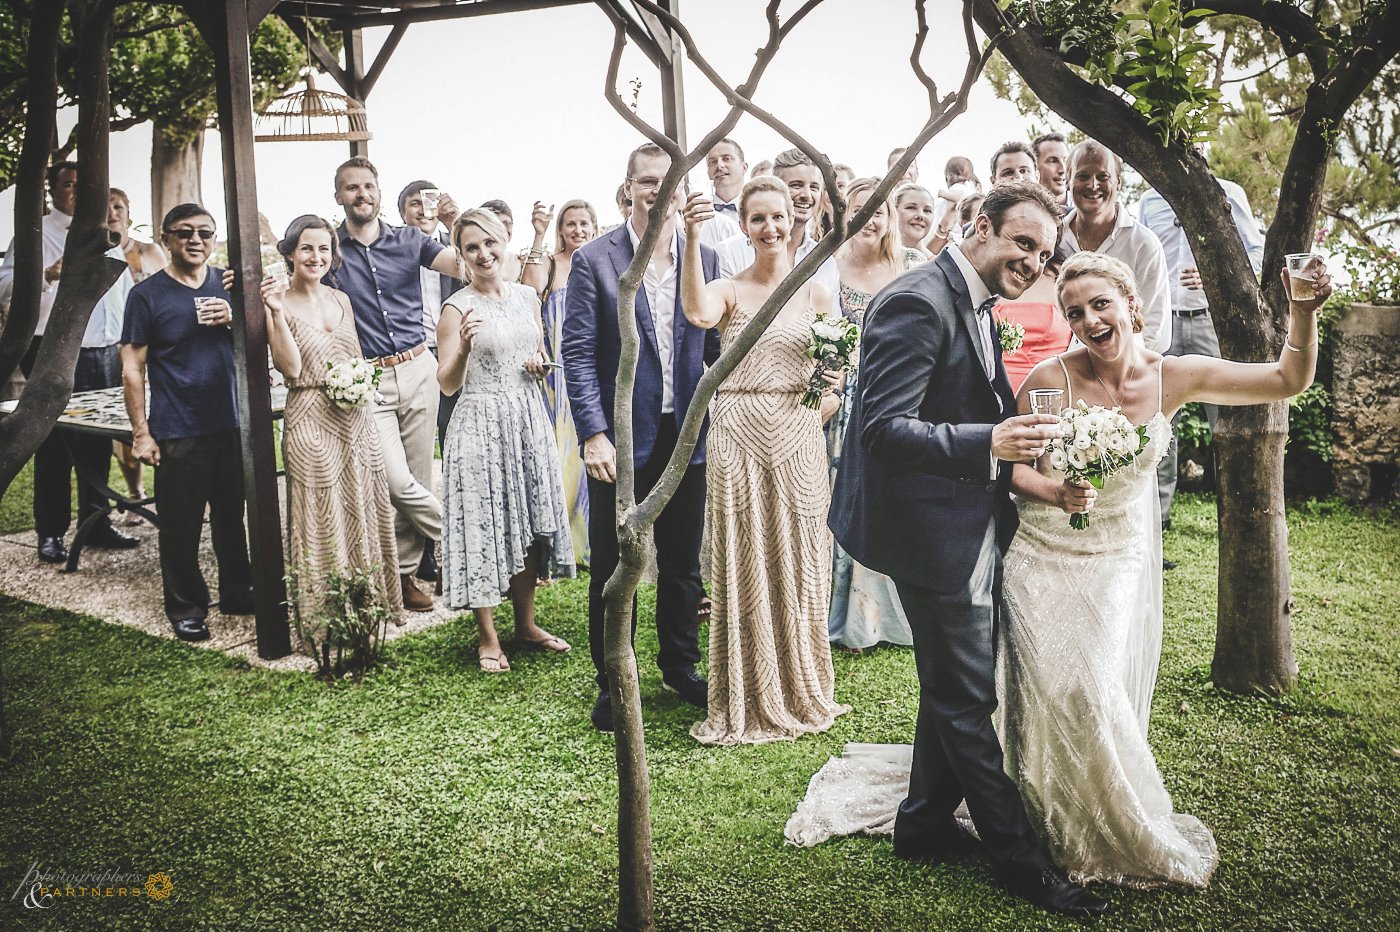 photographer_weddings_ravello_19.jpg